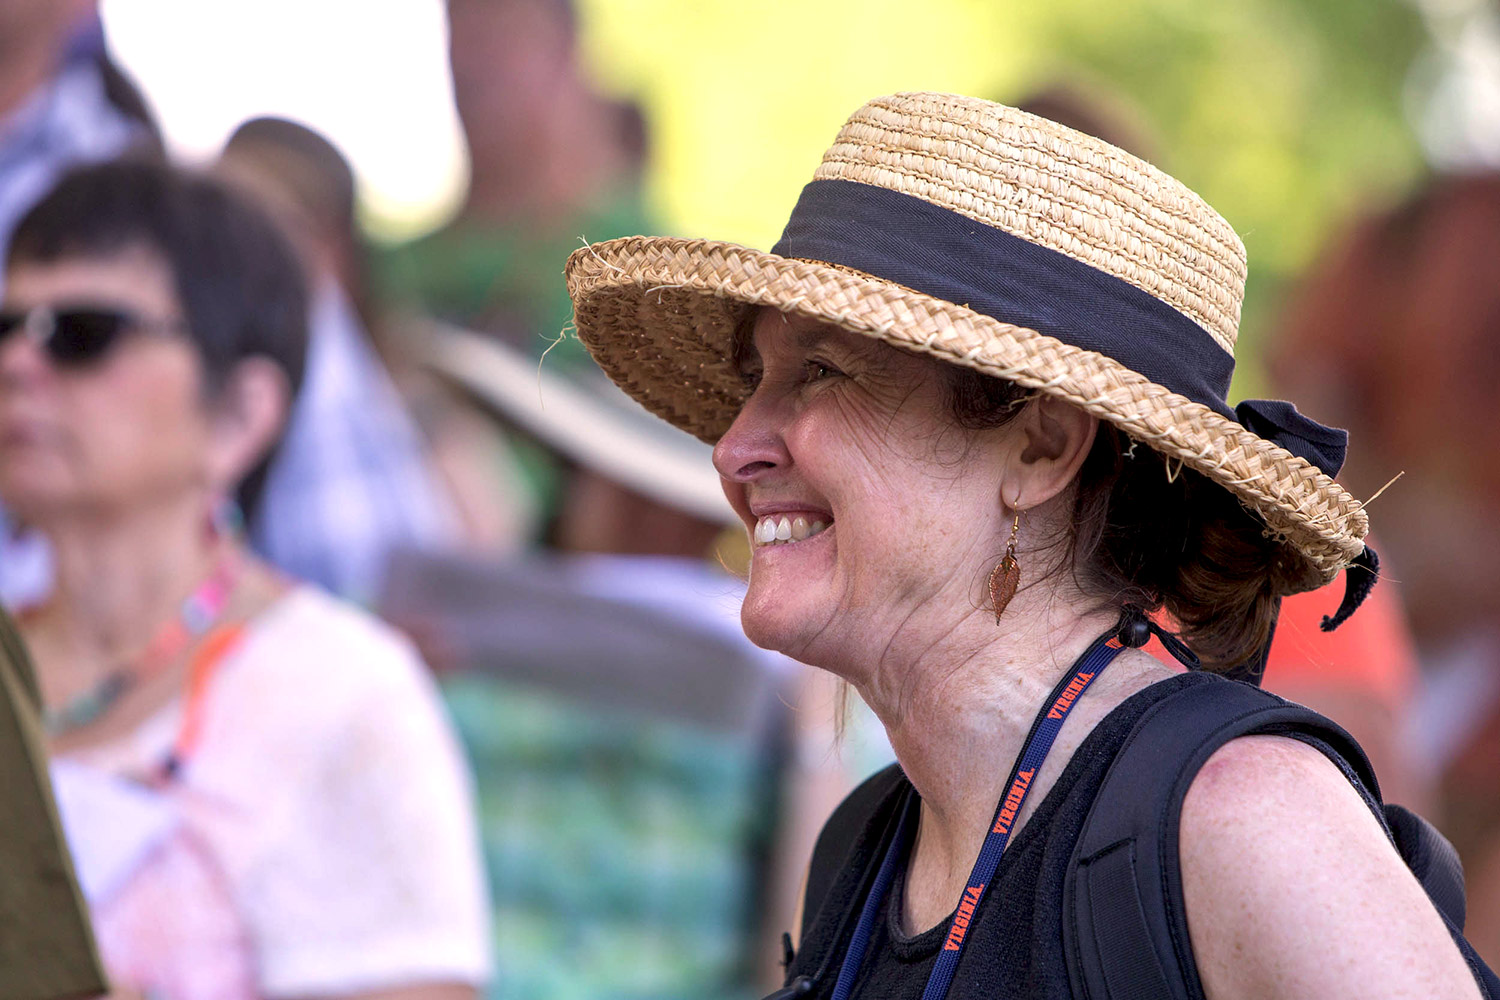 Lisa Reilly, who directed the workshop, joined participants for a tour of Monticello. (Photo by Sanjay Suchak)